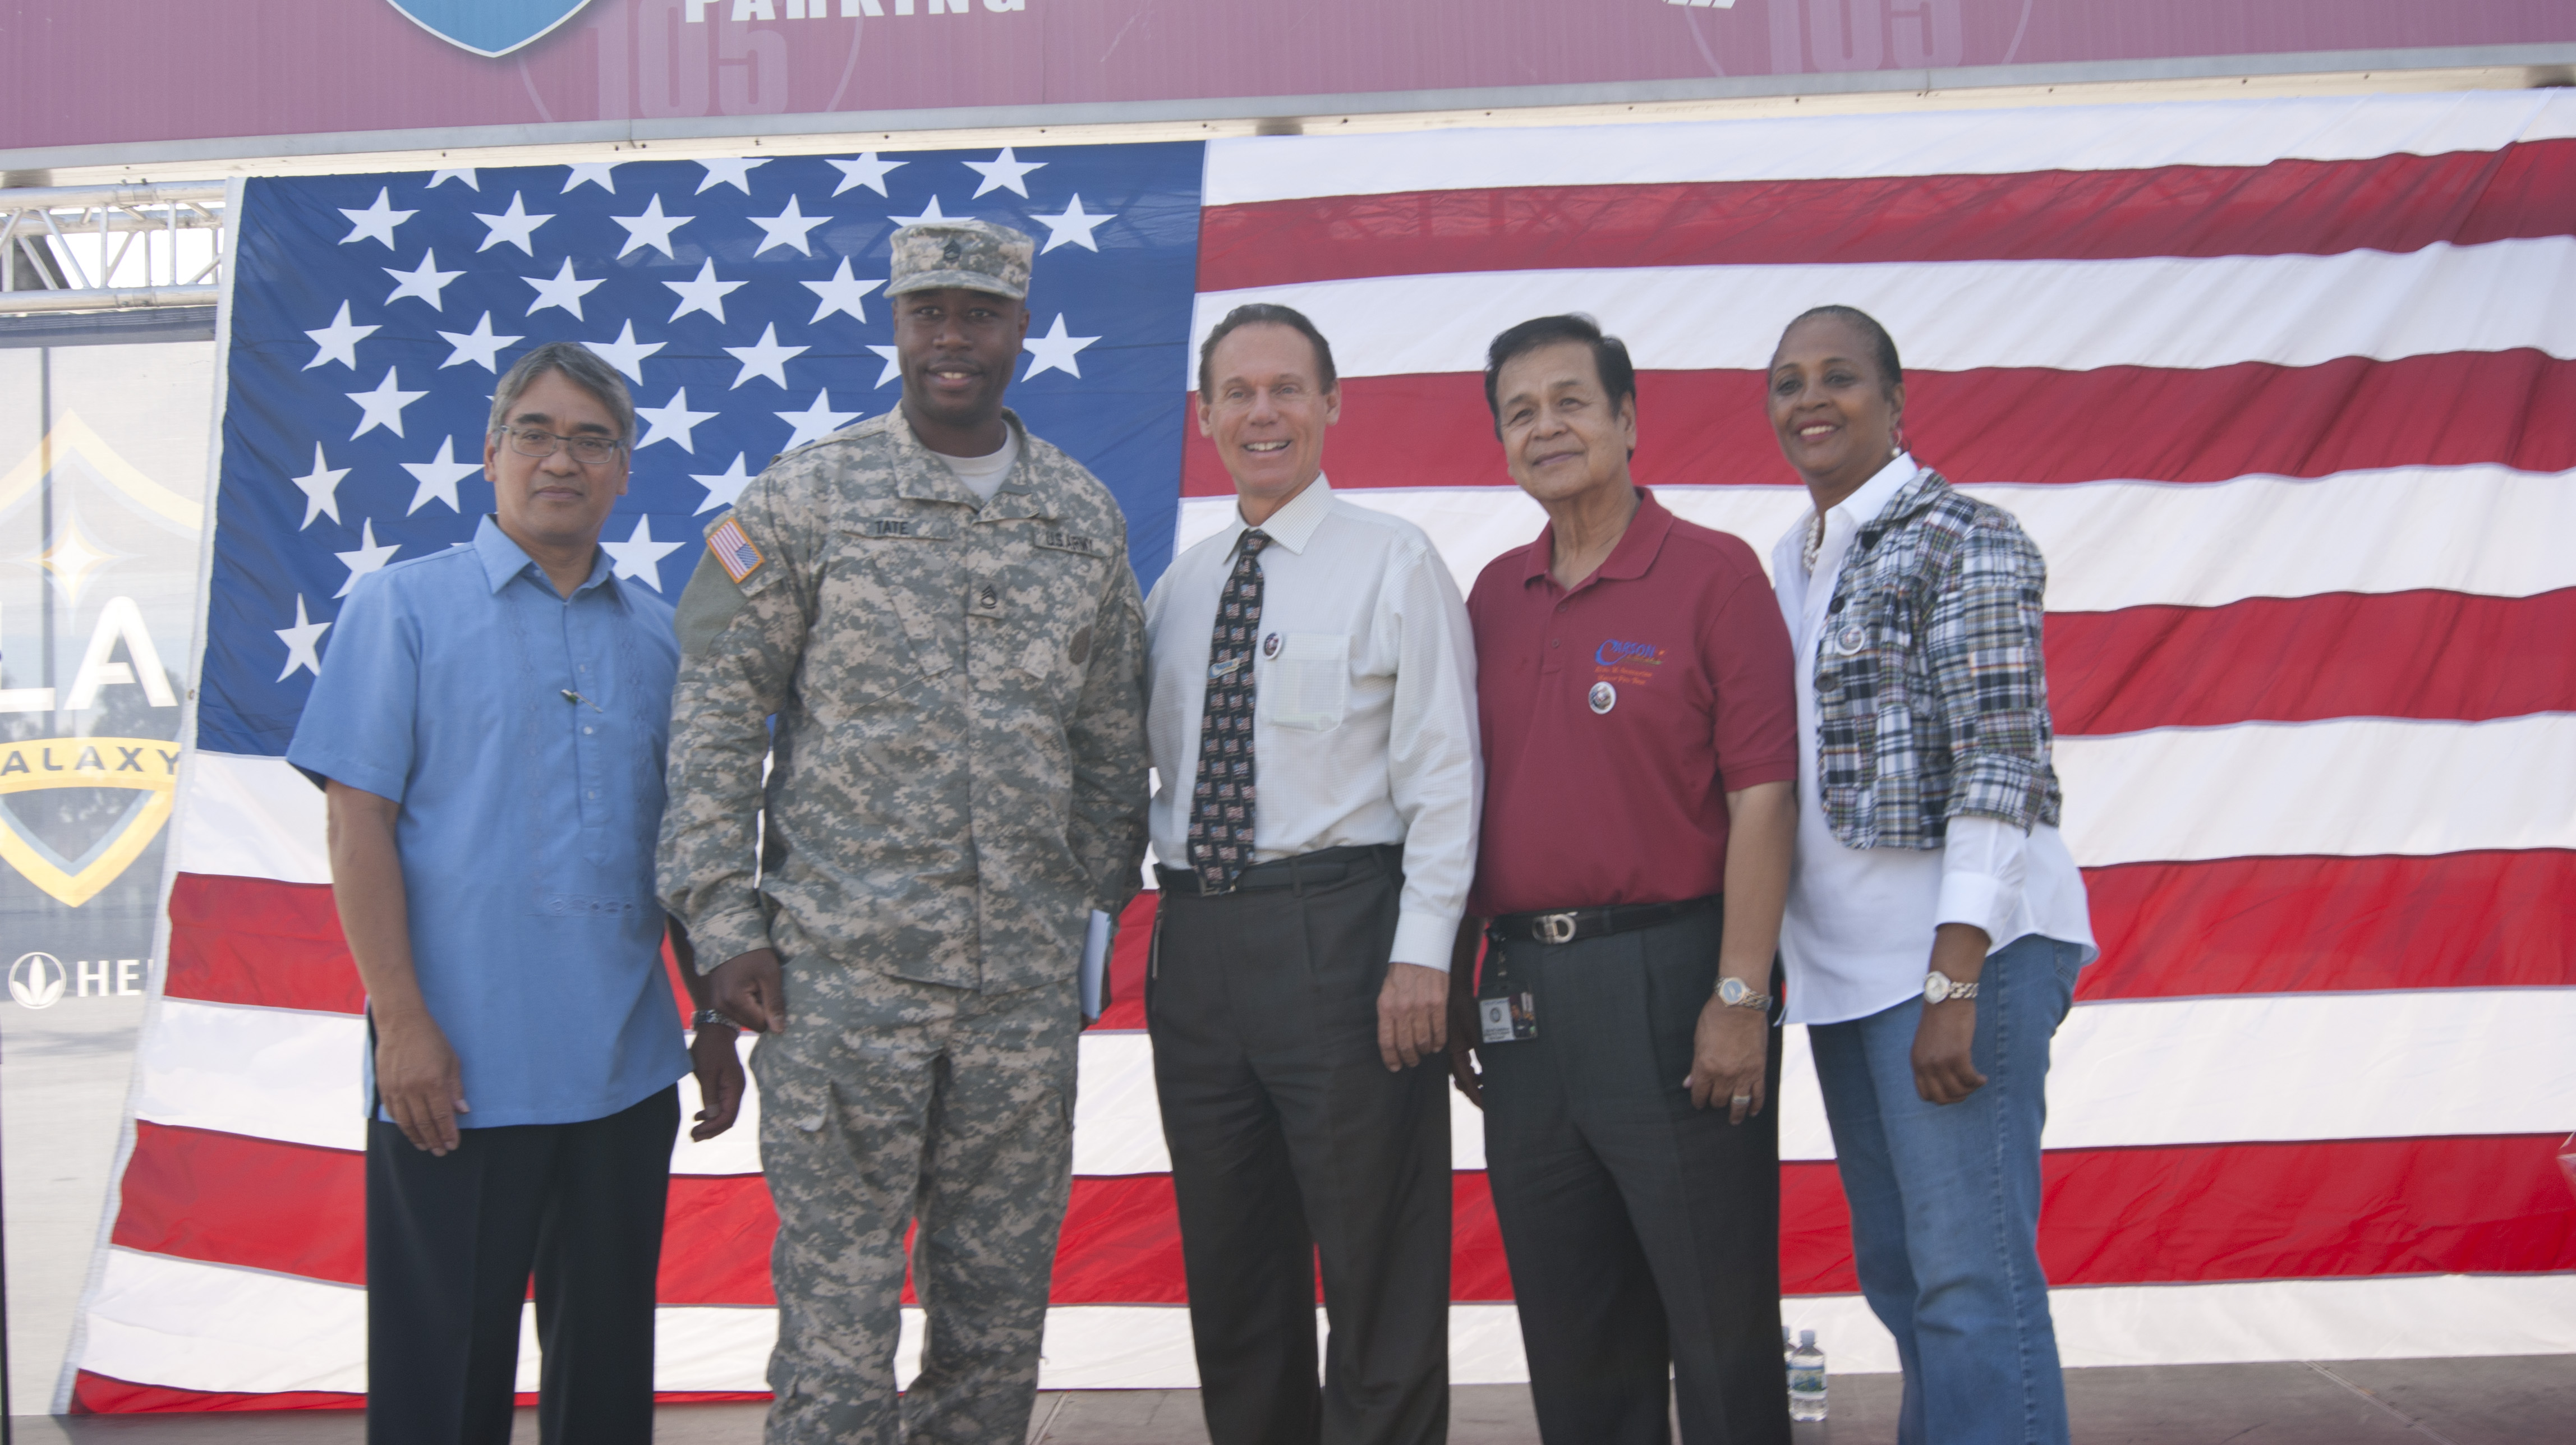 Carson Planning Commissioner Charlotte Brimmer, Councilman Elito Santarino, Carson Mayor Jim Dear, U.S. Army officer Tate.